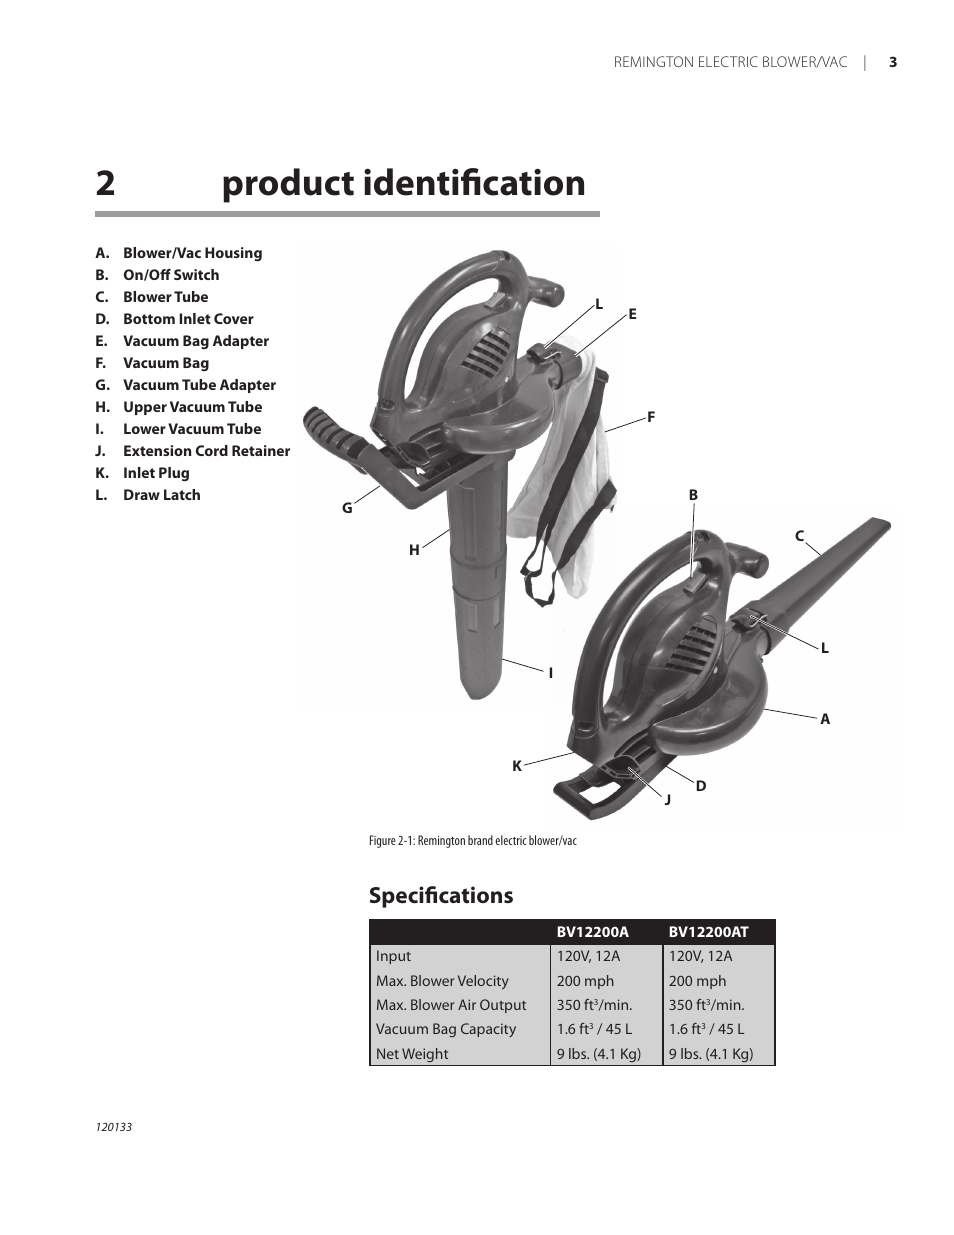 2product identification, Specifications   Remington BV12200A User